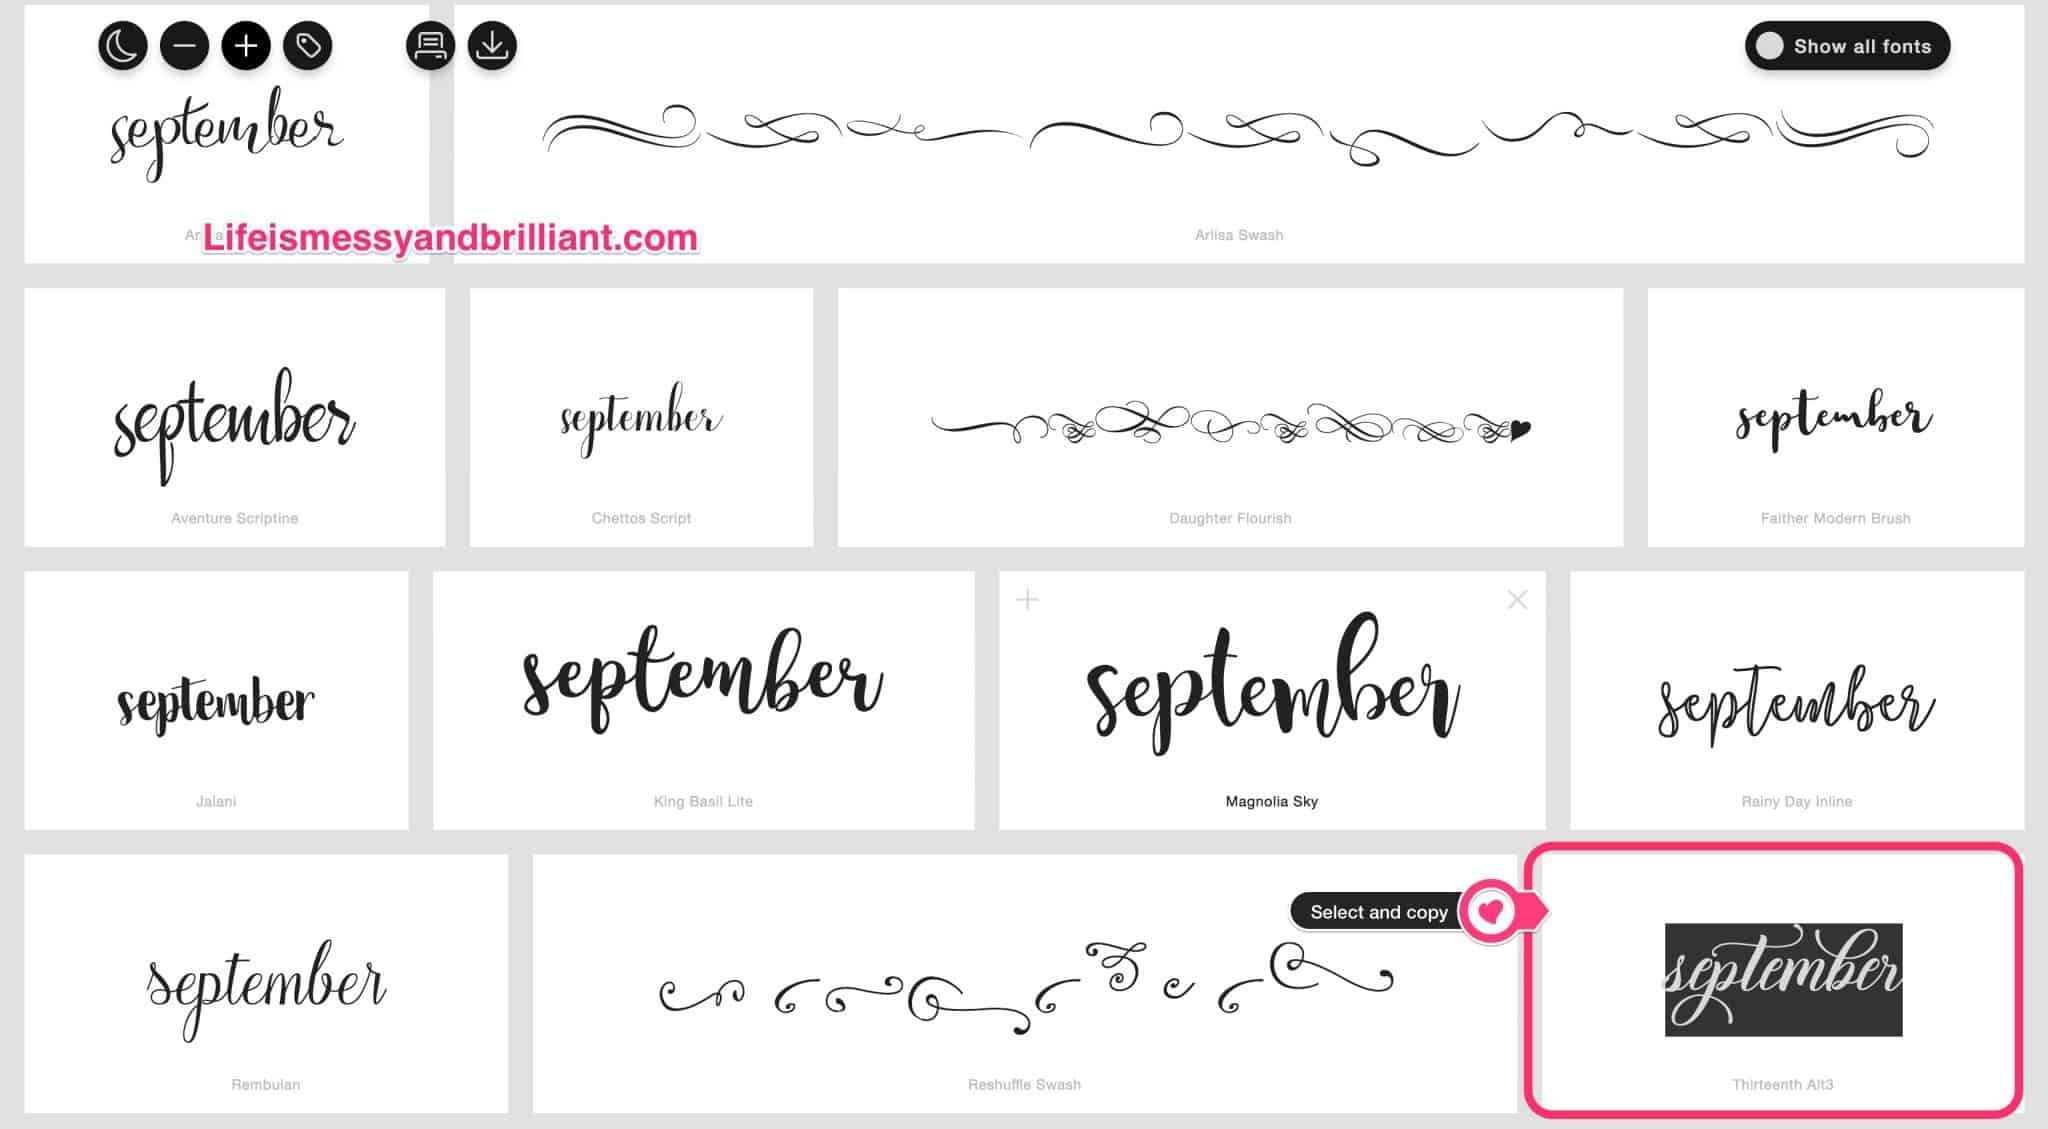 How To Add Style To Fonts Using The Pages Application